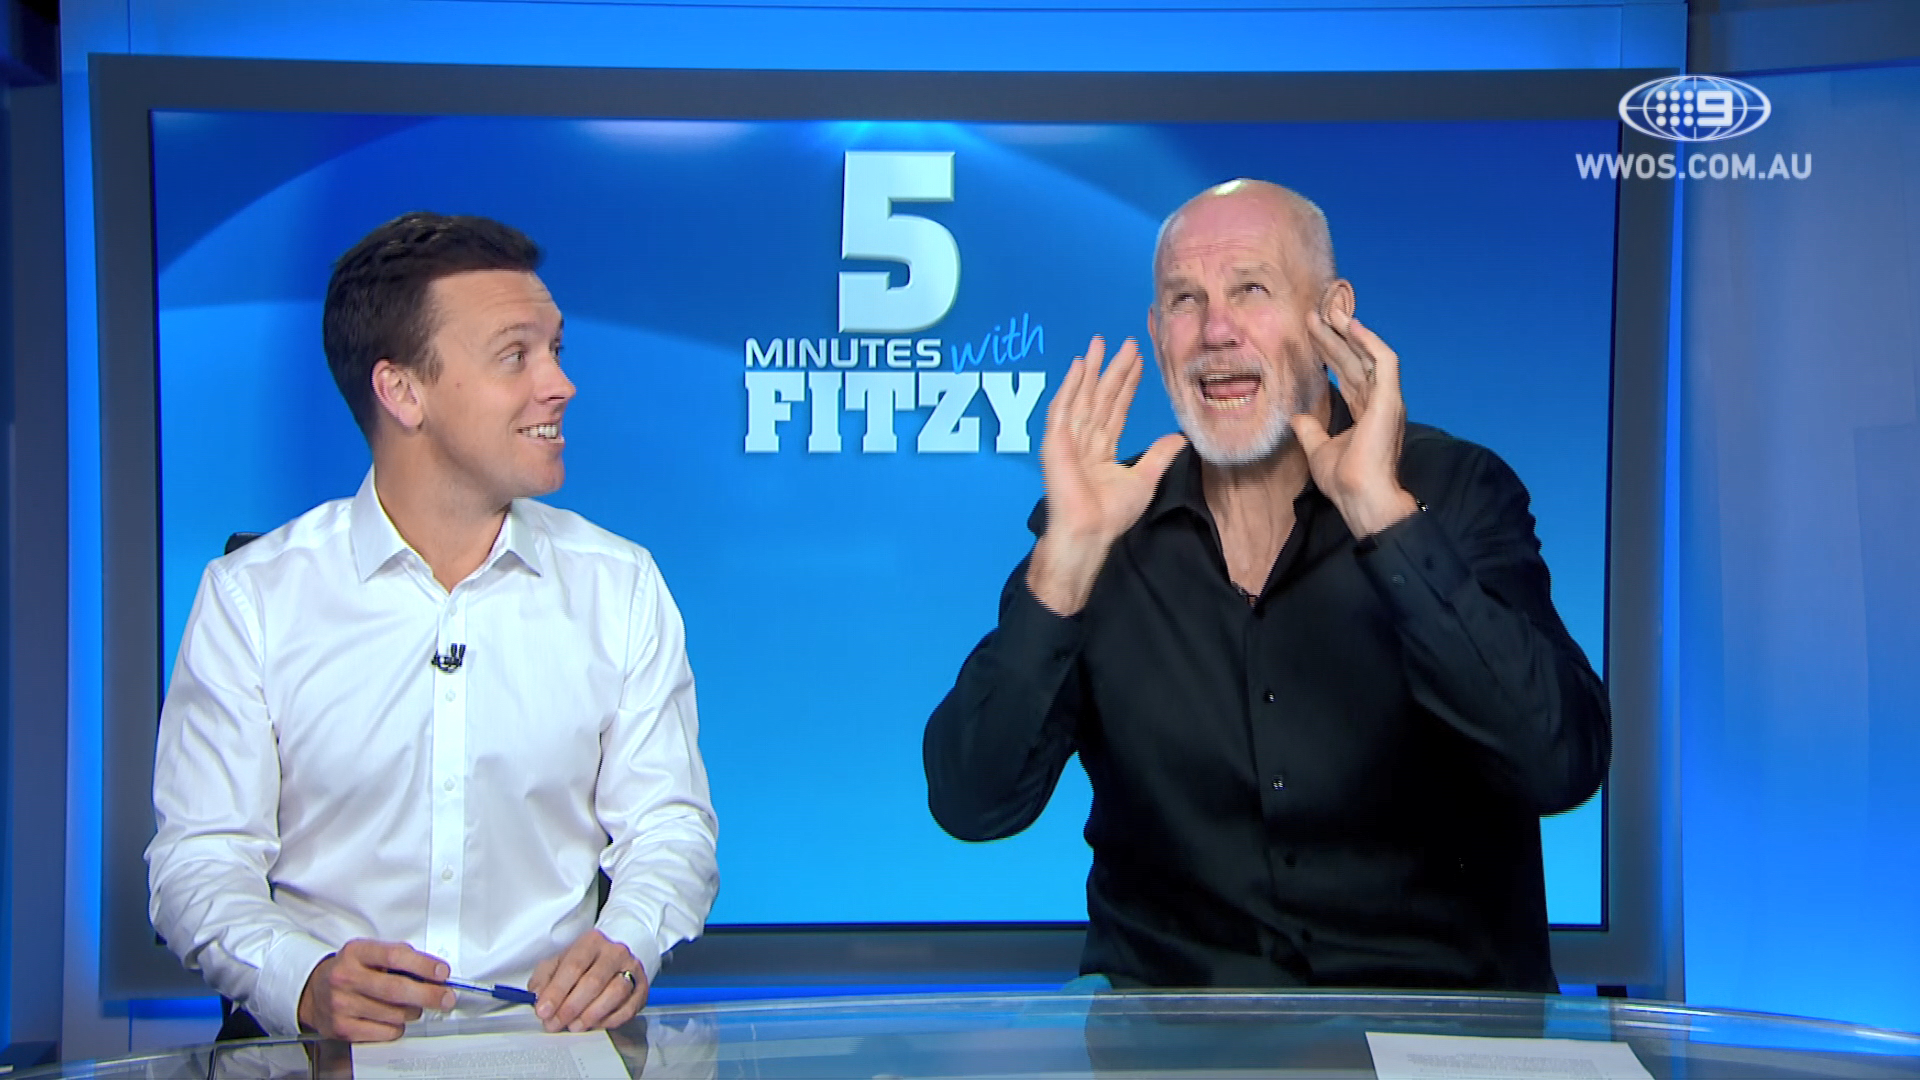 No optimism in cricket: 5 Mins with Fitzy